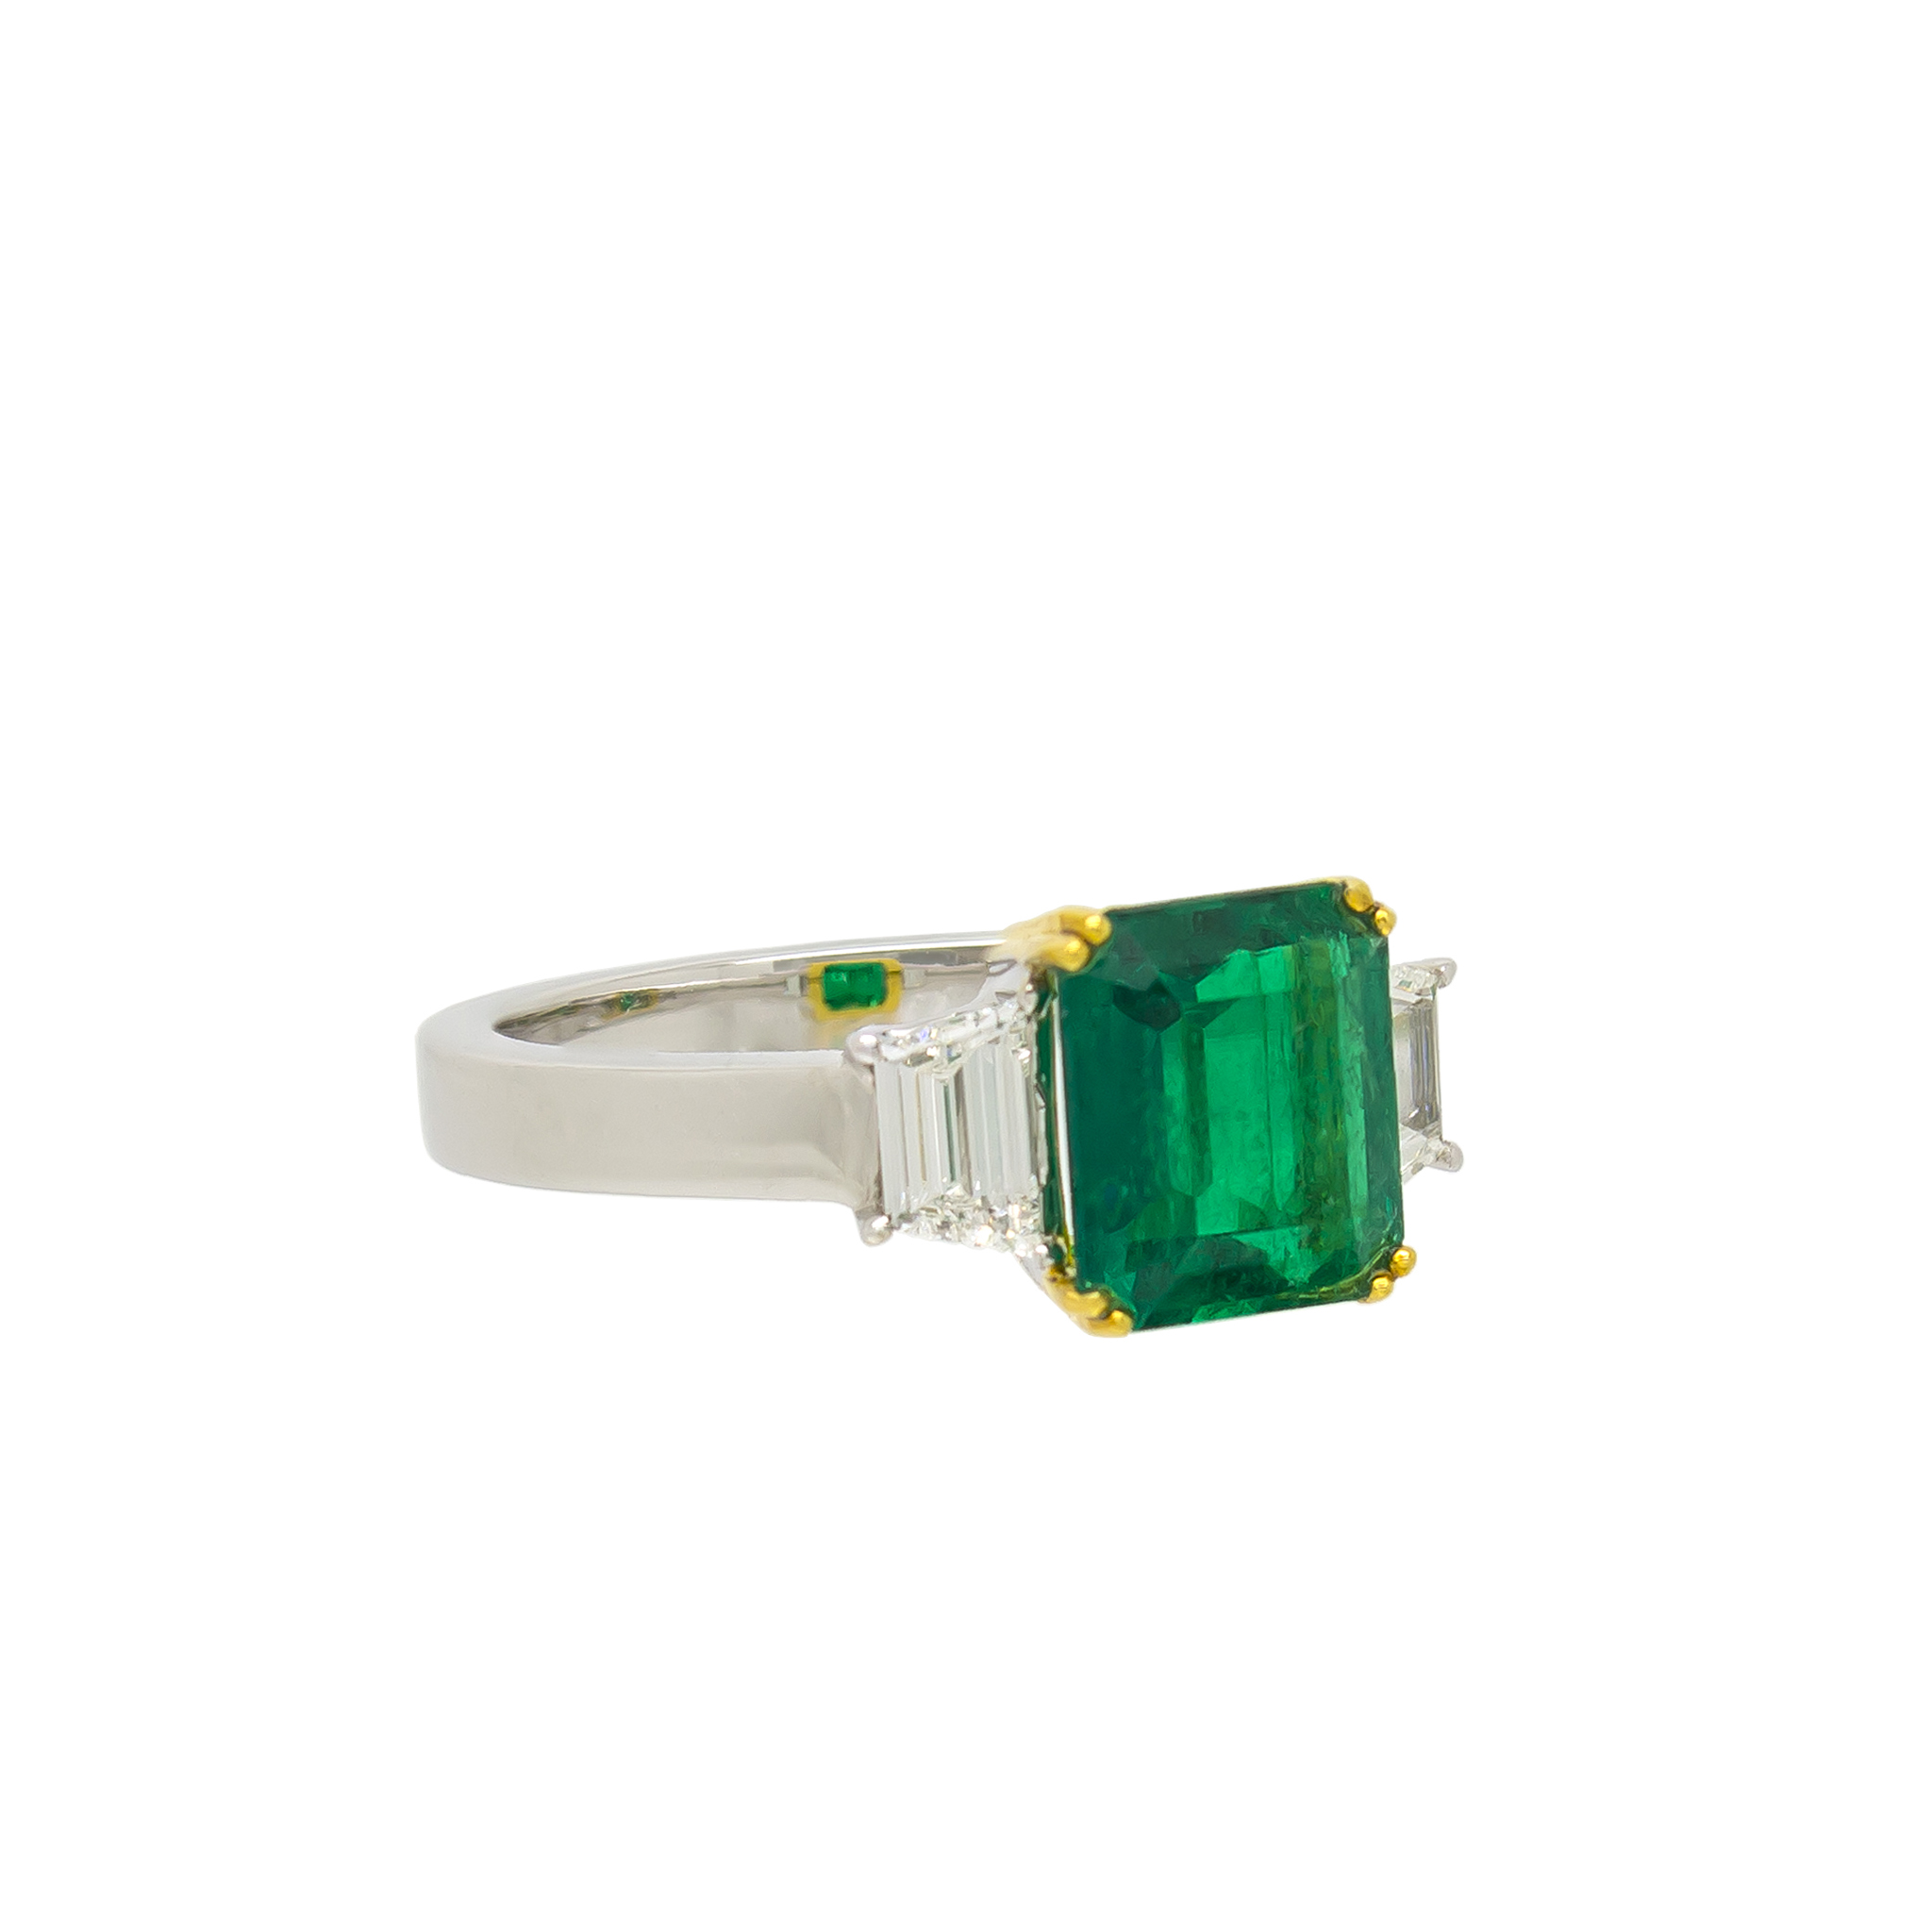 Noxy emerald ring c white